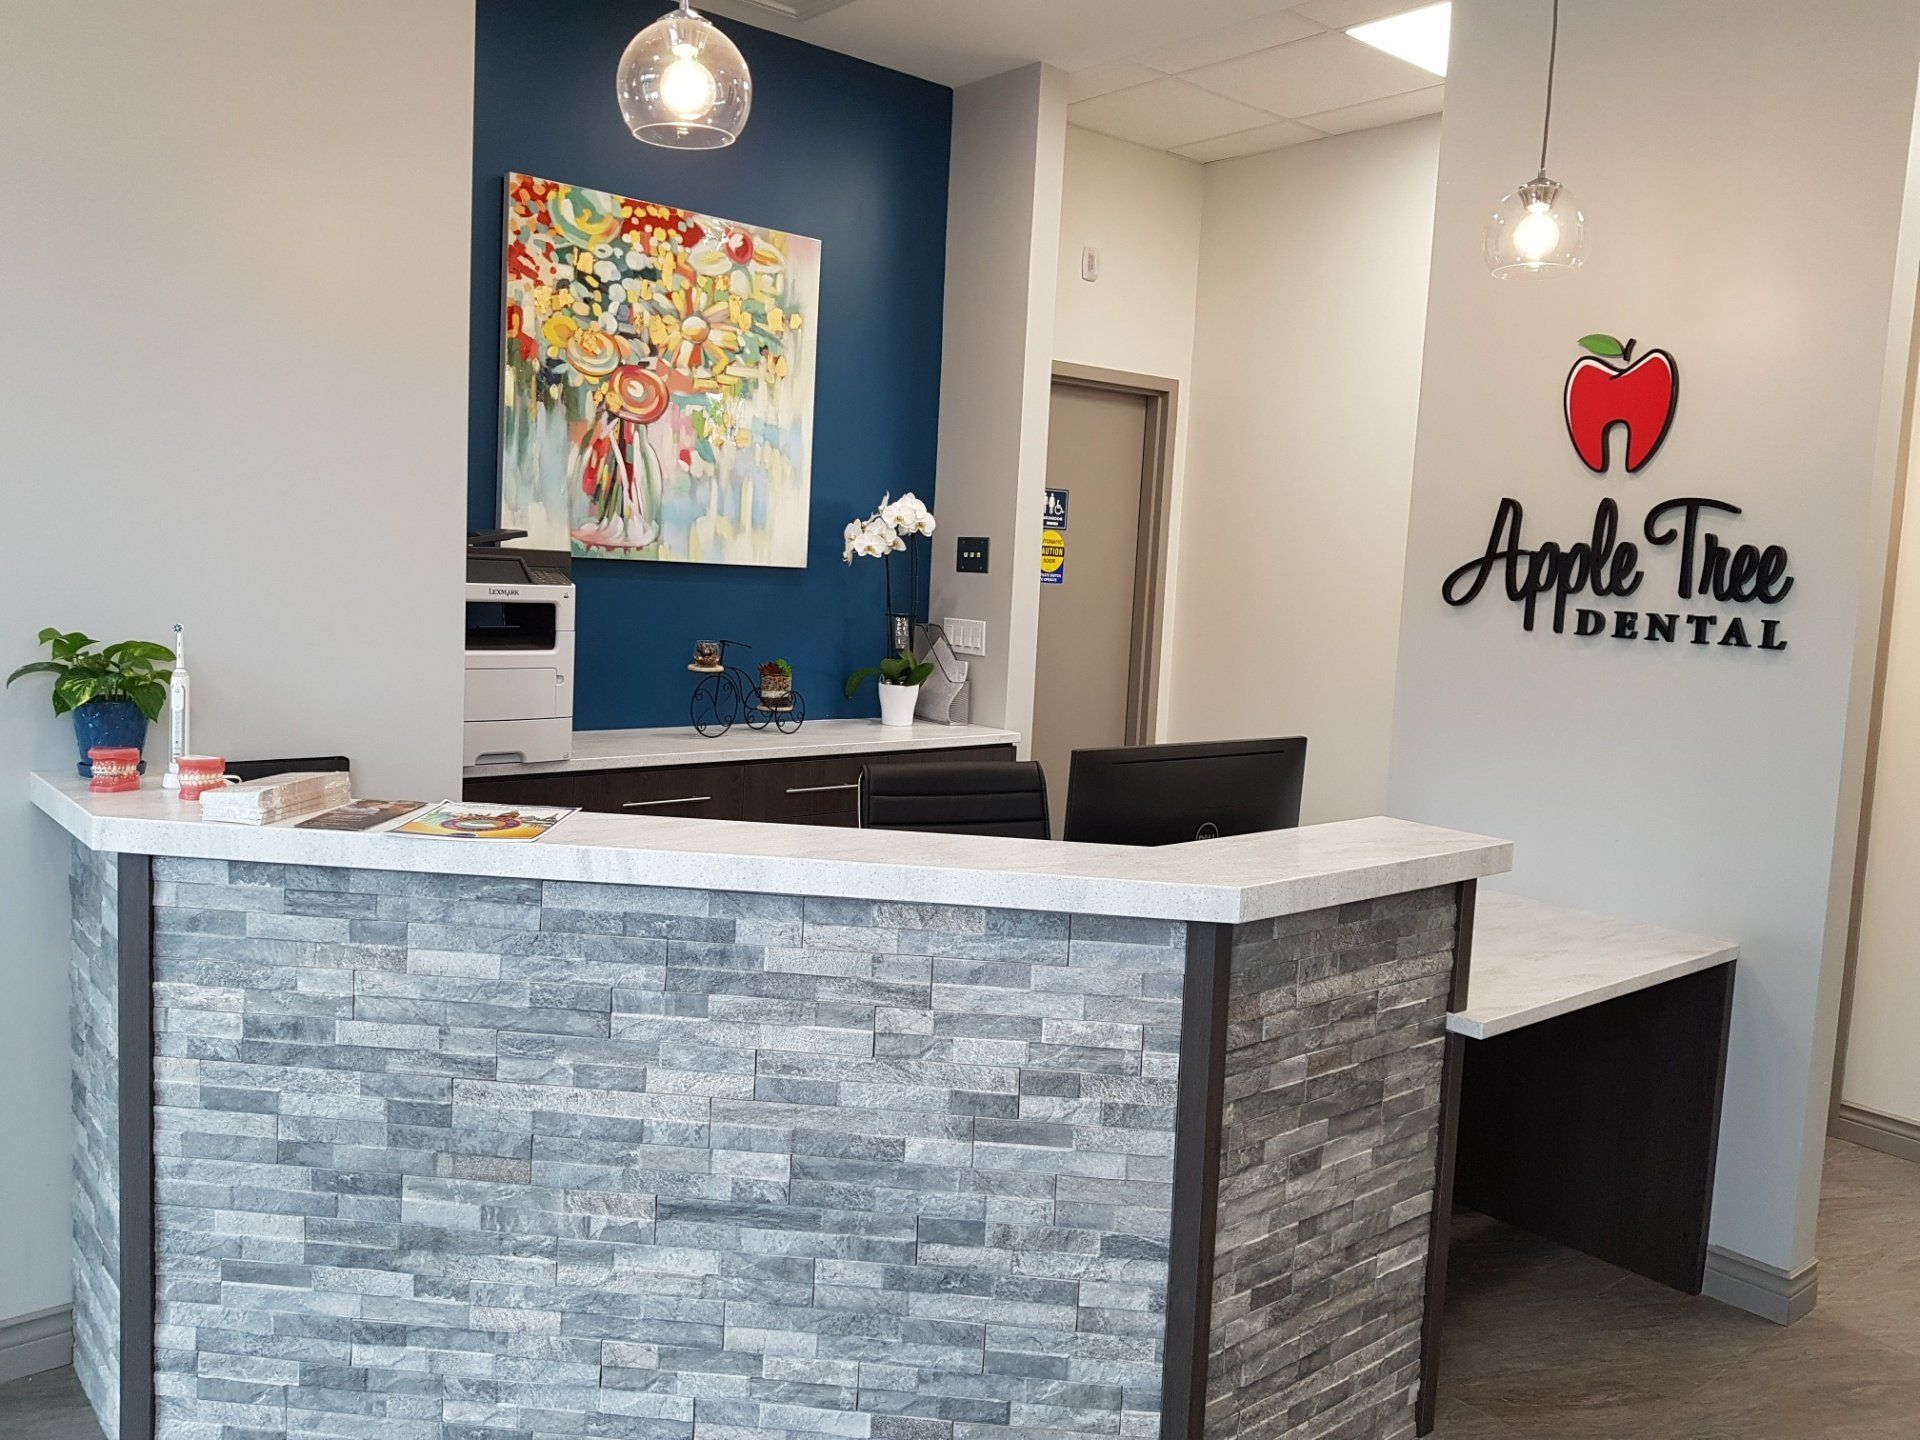 Reception area of Apple Tree Dental having wall painting and reception desk along with chairs